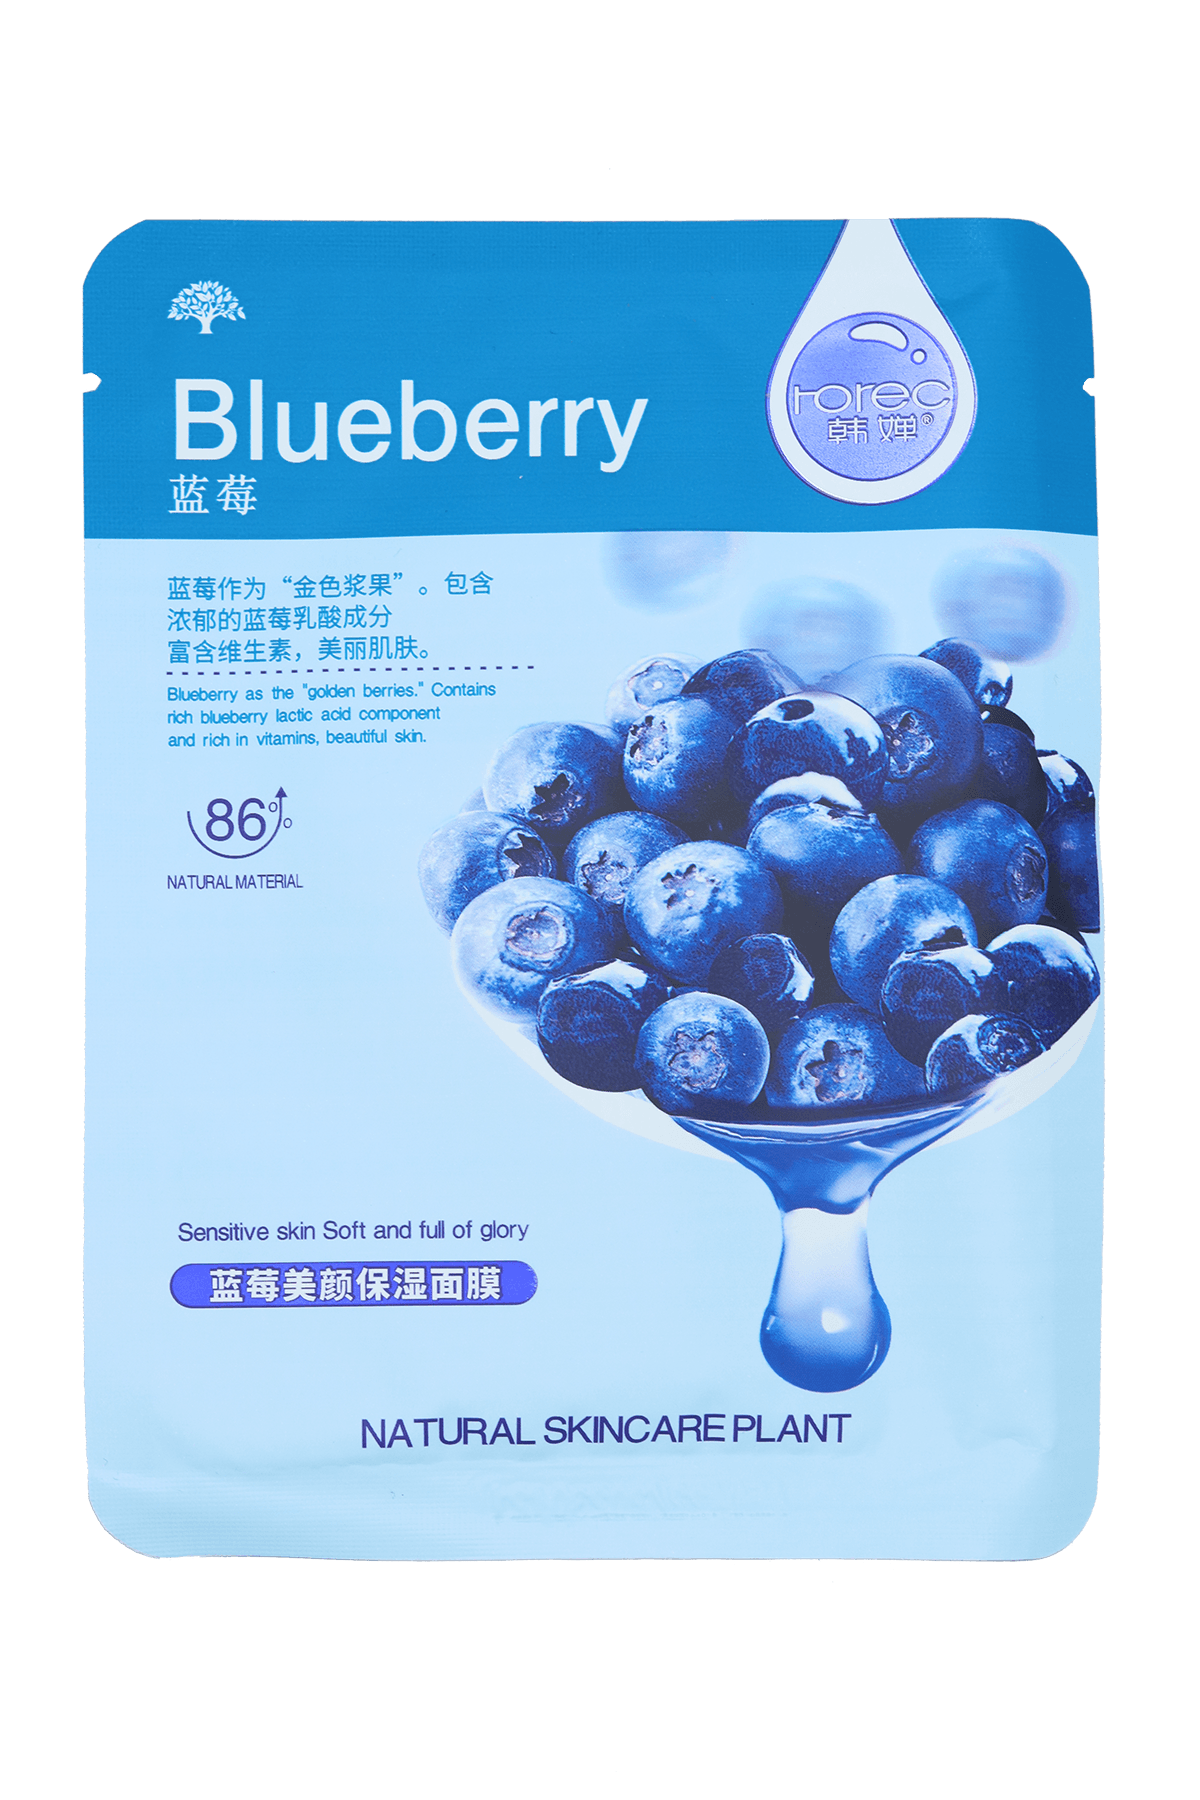 Miss K SKIN - Blueberry Sheet Mask